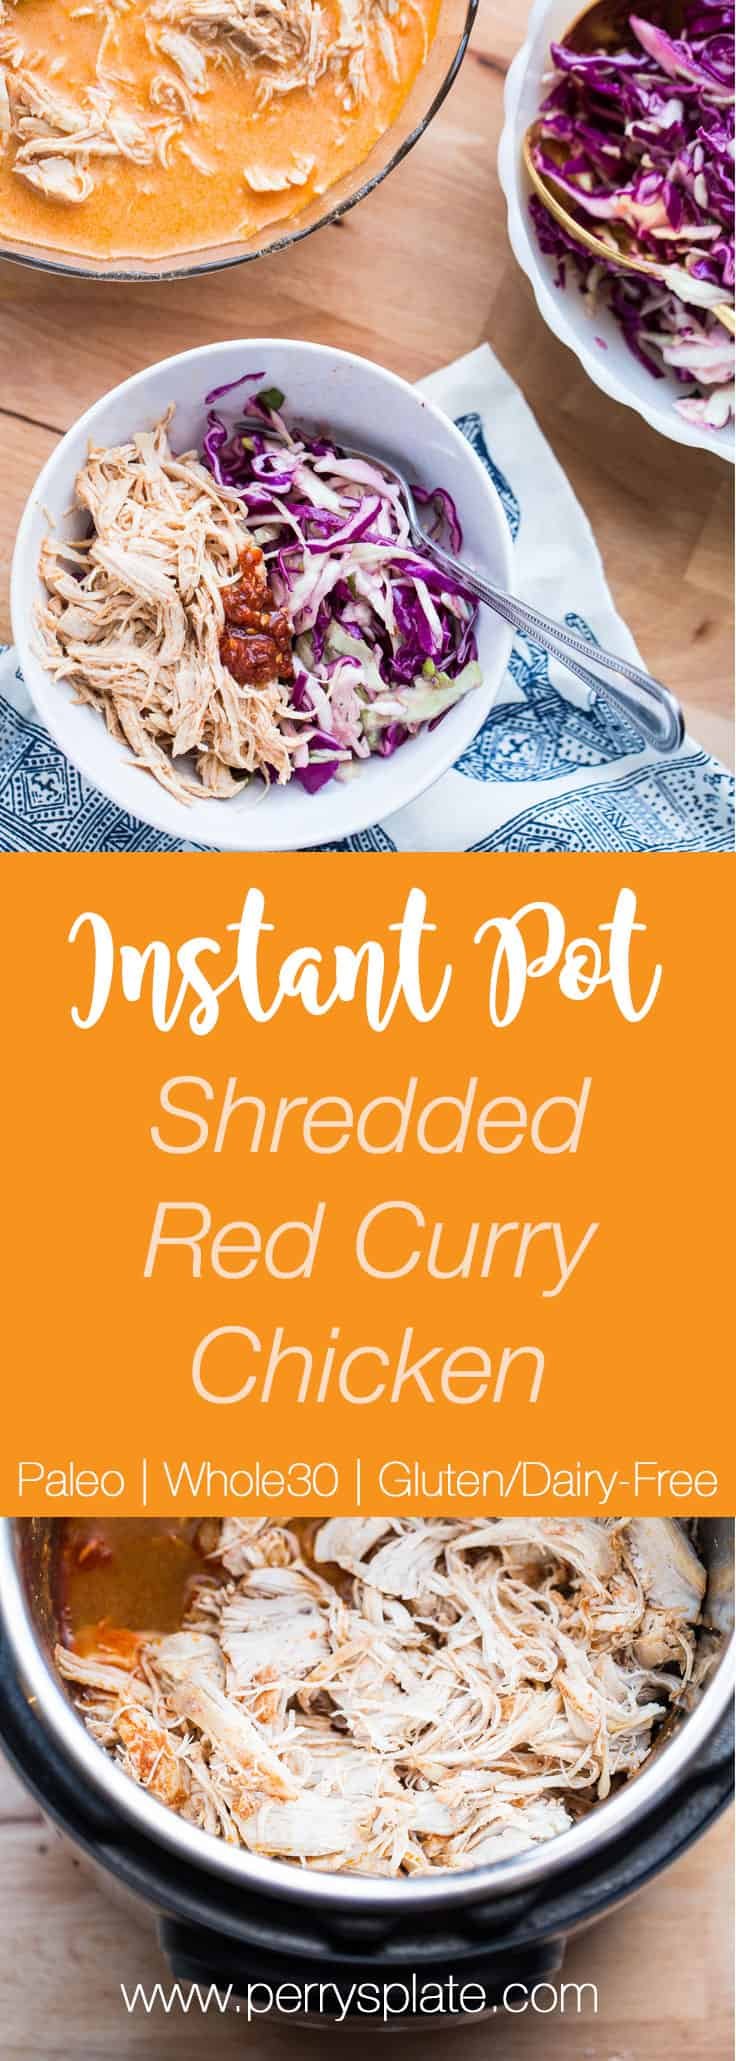 Instant Pot Shredded Red Curry Chicken & Sweet Thai Slaw | Whole30 recipes | paleo recipes | perrysplate.com